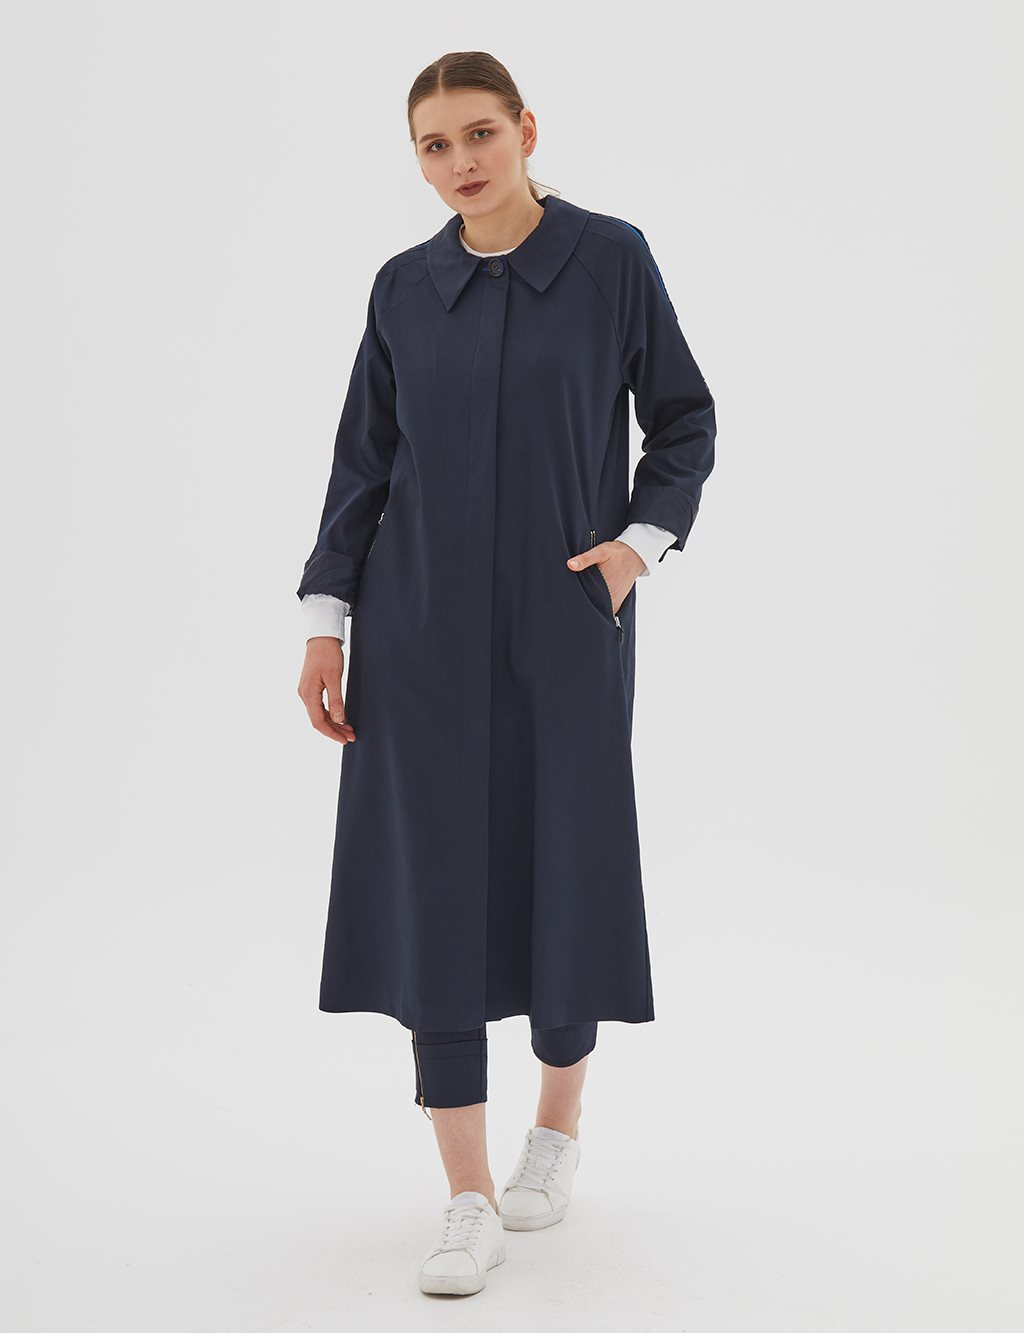 Shoulder Detailed Trenchcoat Navy B20 14014